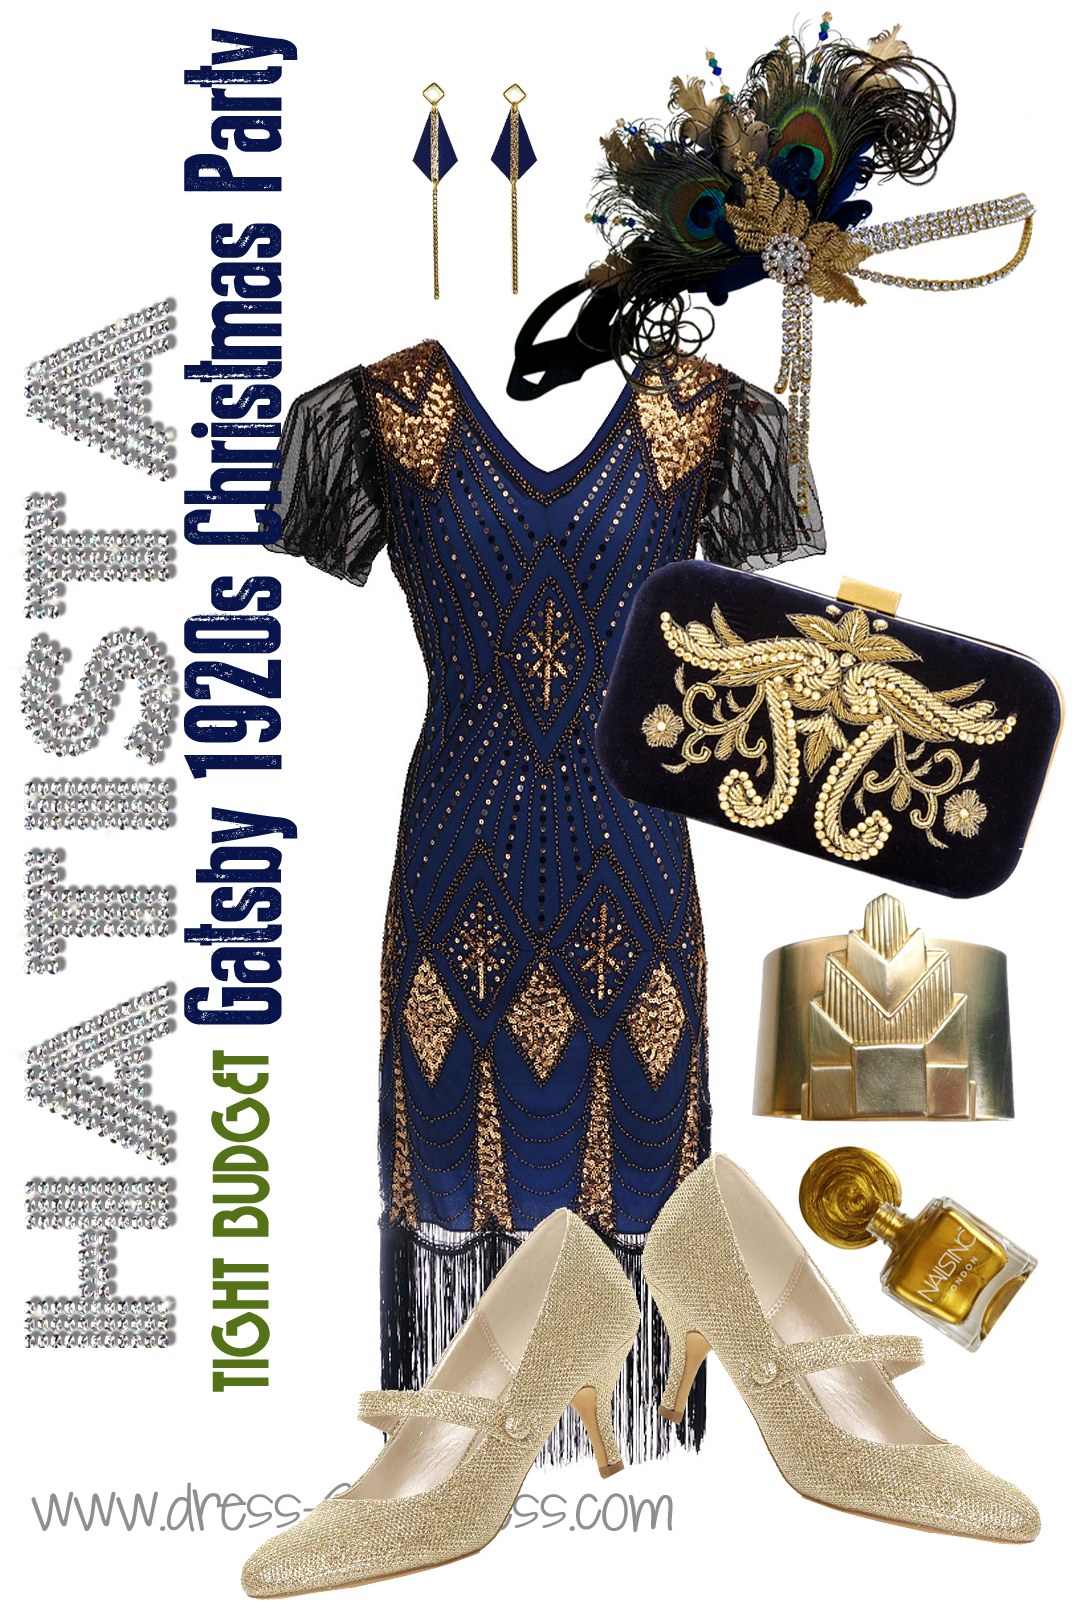 Great Gatsby Party Ideas, What to wear to a 1920s Theme Party. 20s New Years Eve Party ideas. Gatsby Halloween Party Outfits. Great Gatsby Christmas Party outfits. 1920s Birthday Party. Outfit Inspiration for 1920s Fashion. Art Deco Fashion, 1920s Dress, Speakeasy Party Costume,  #1920s #gatsbyheadpiece #speakeasy #newyearseve #christmasparty